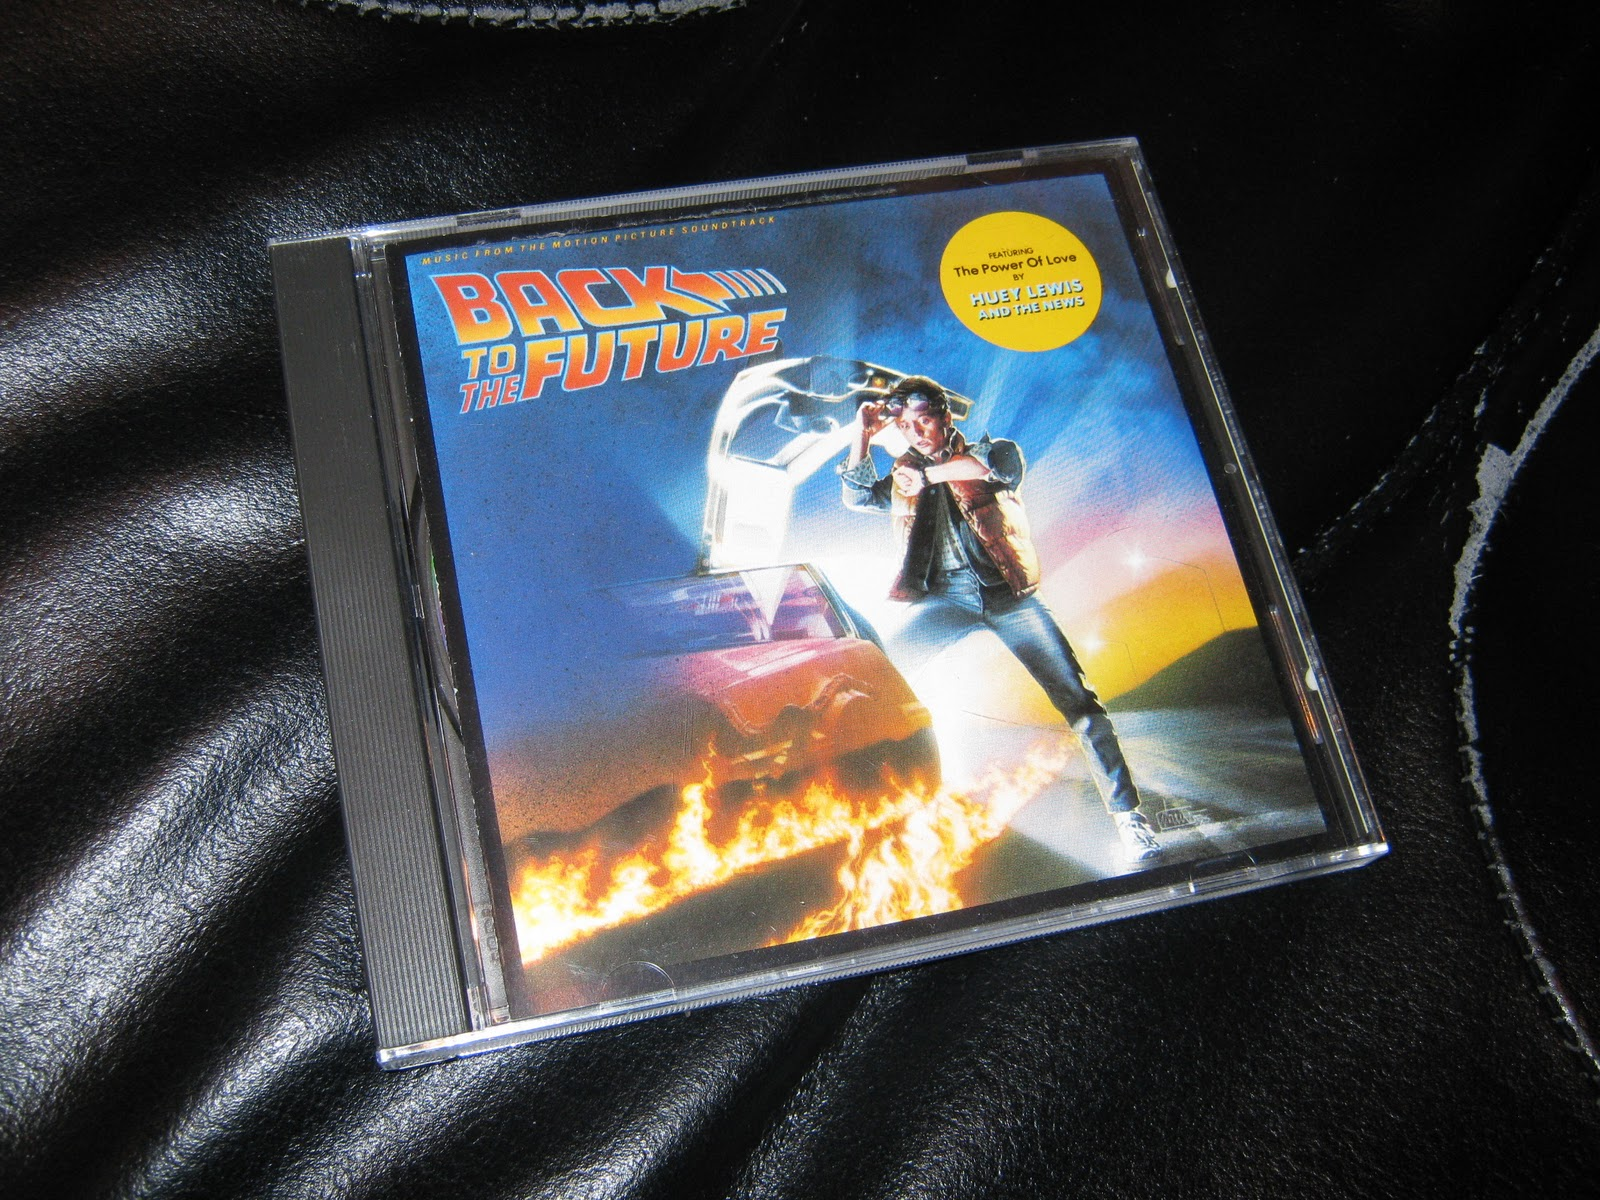 Dmc 6239 quot back quot tracks the music of quot back to the future quot